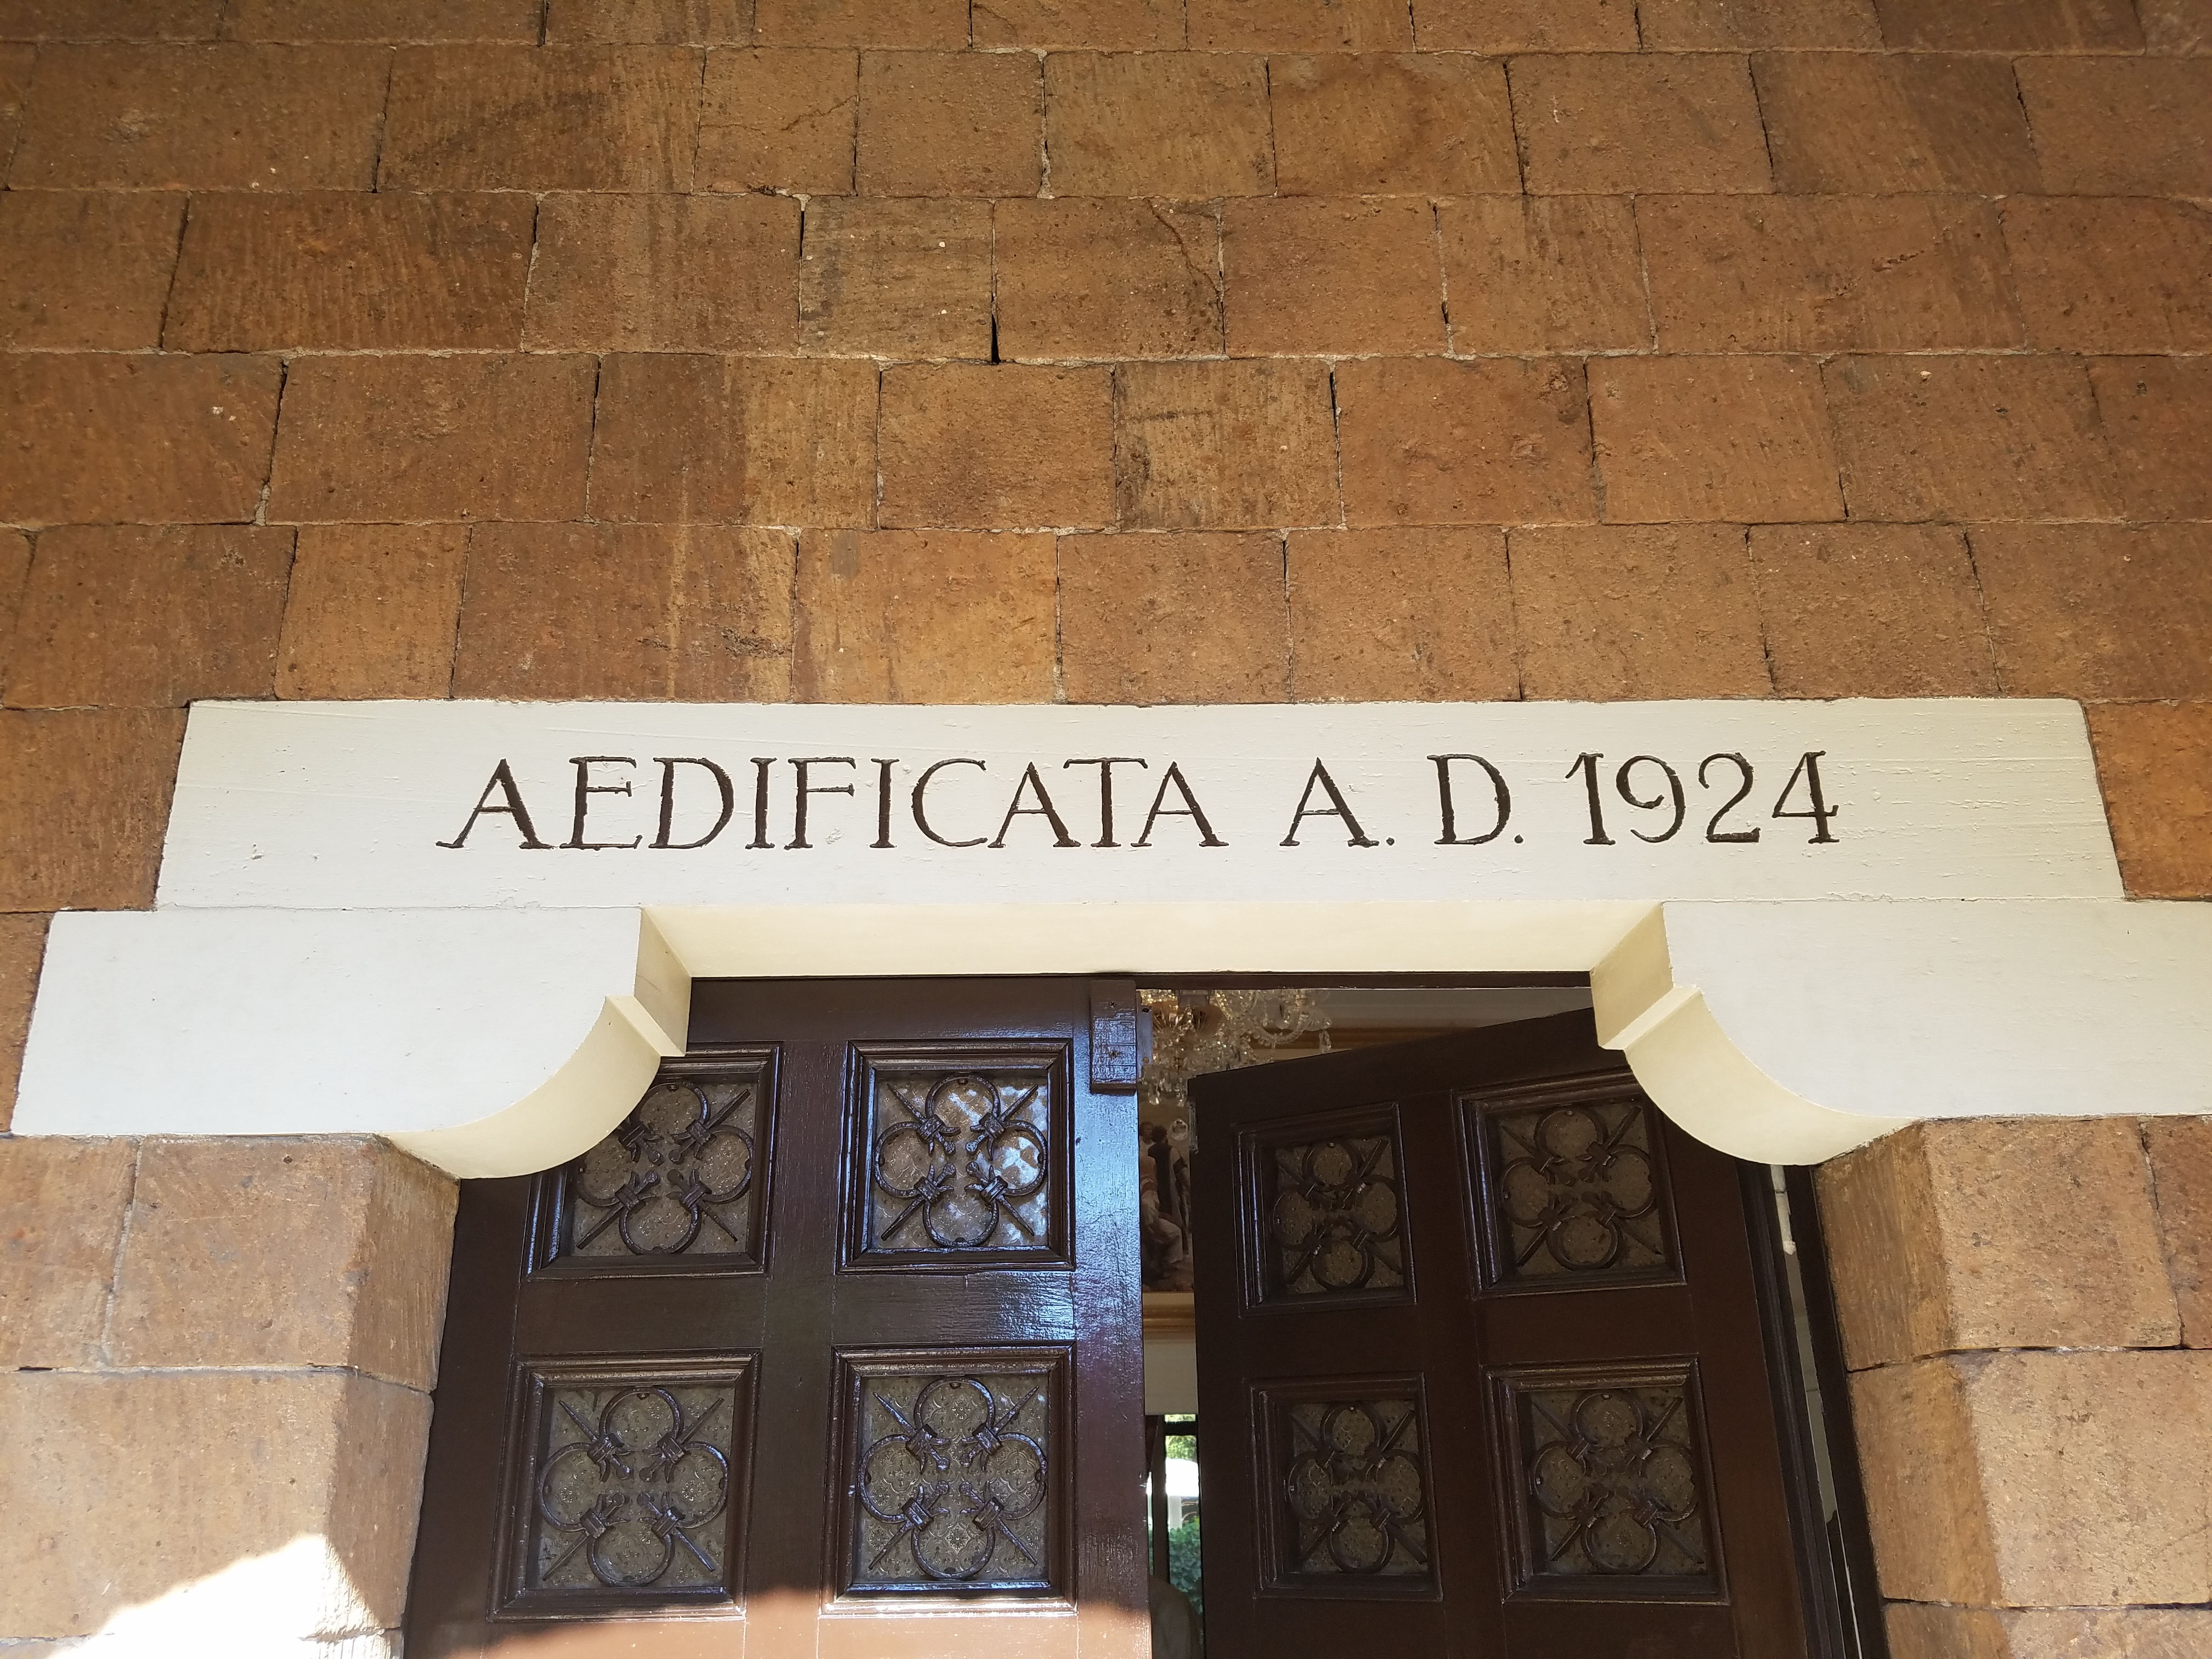 Above the door of the Italy Rome Mission home is the date the villa was completed and first inhabited.